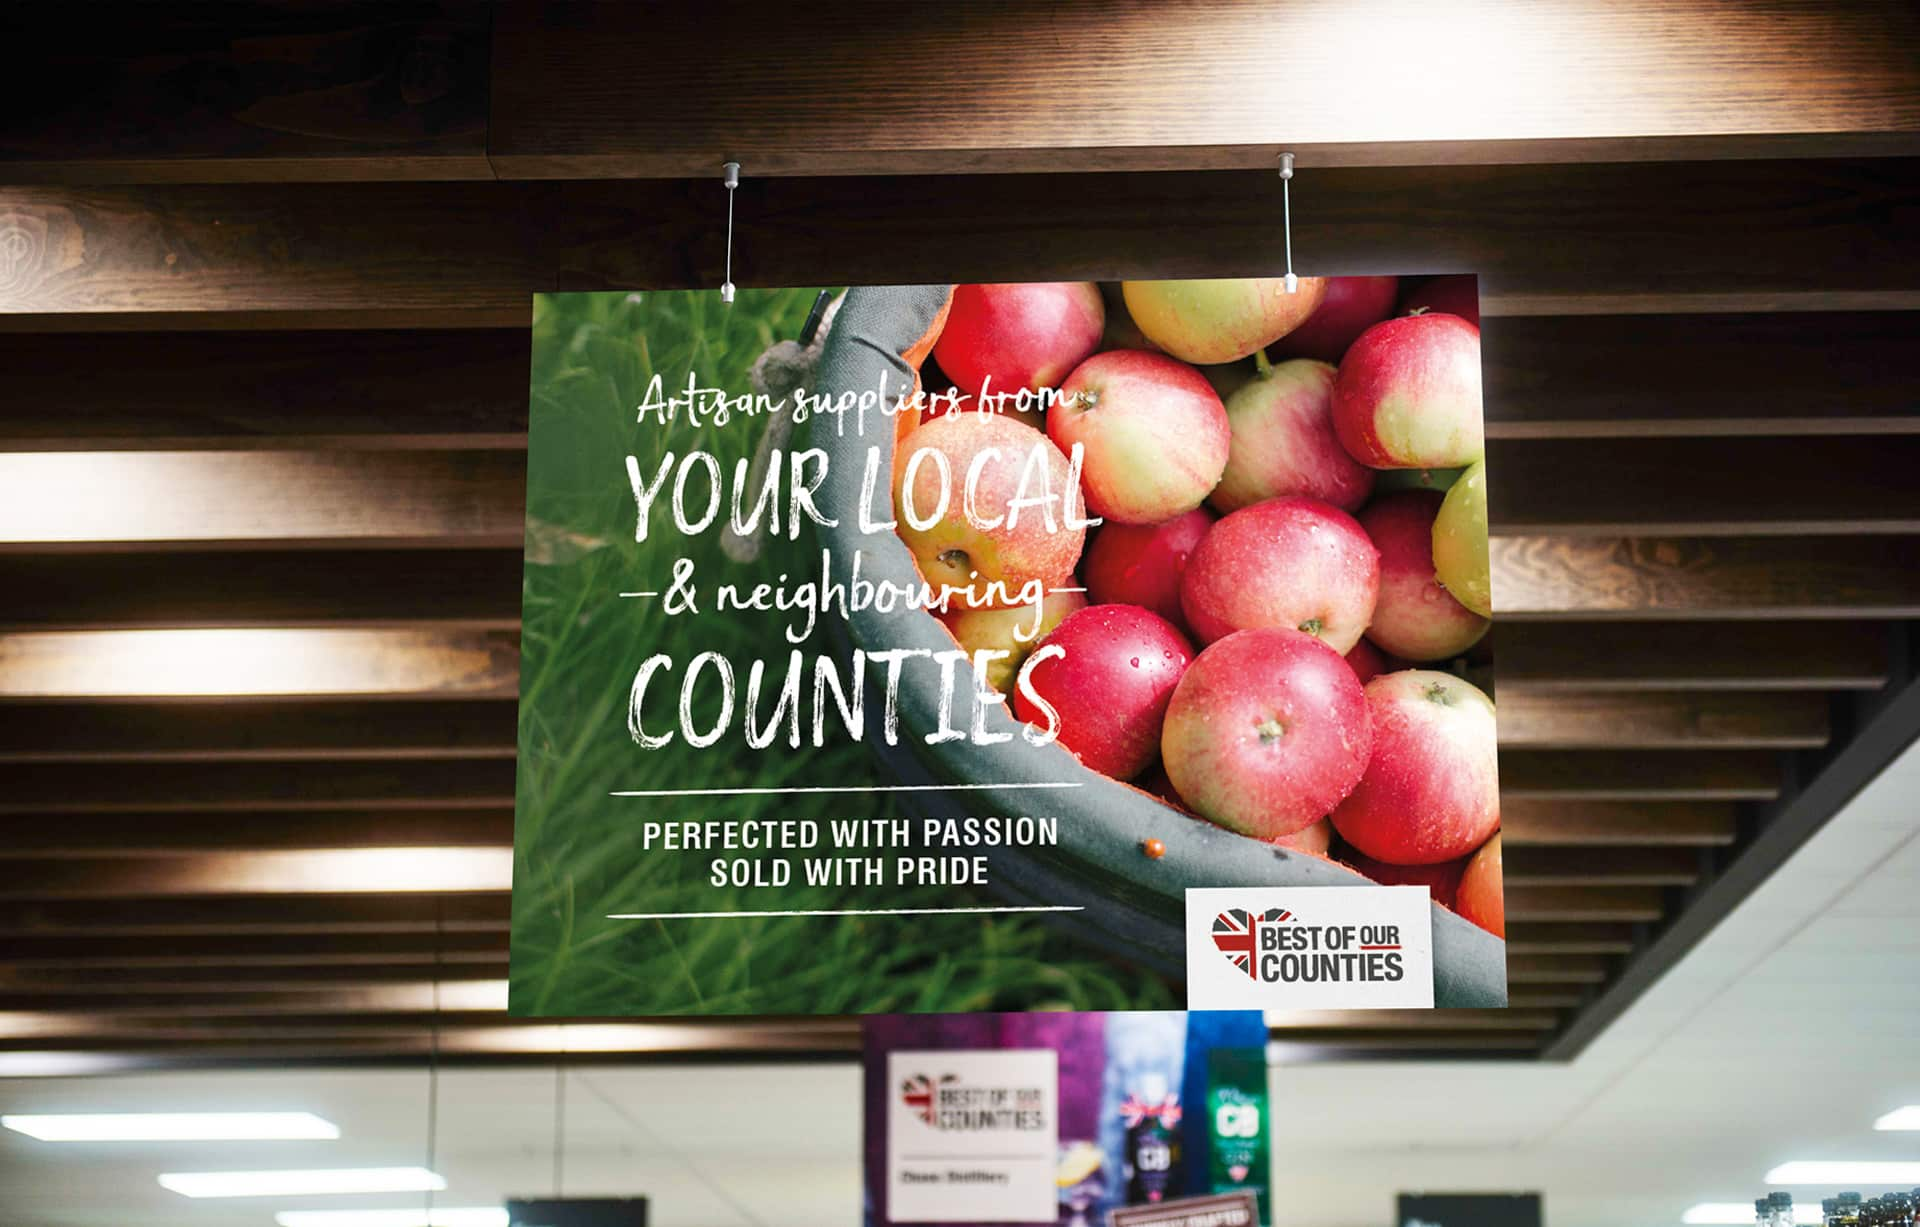 Shopper journey marketing, retail trends to premium food marketing In store POS hanging board food photography and design